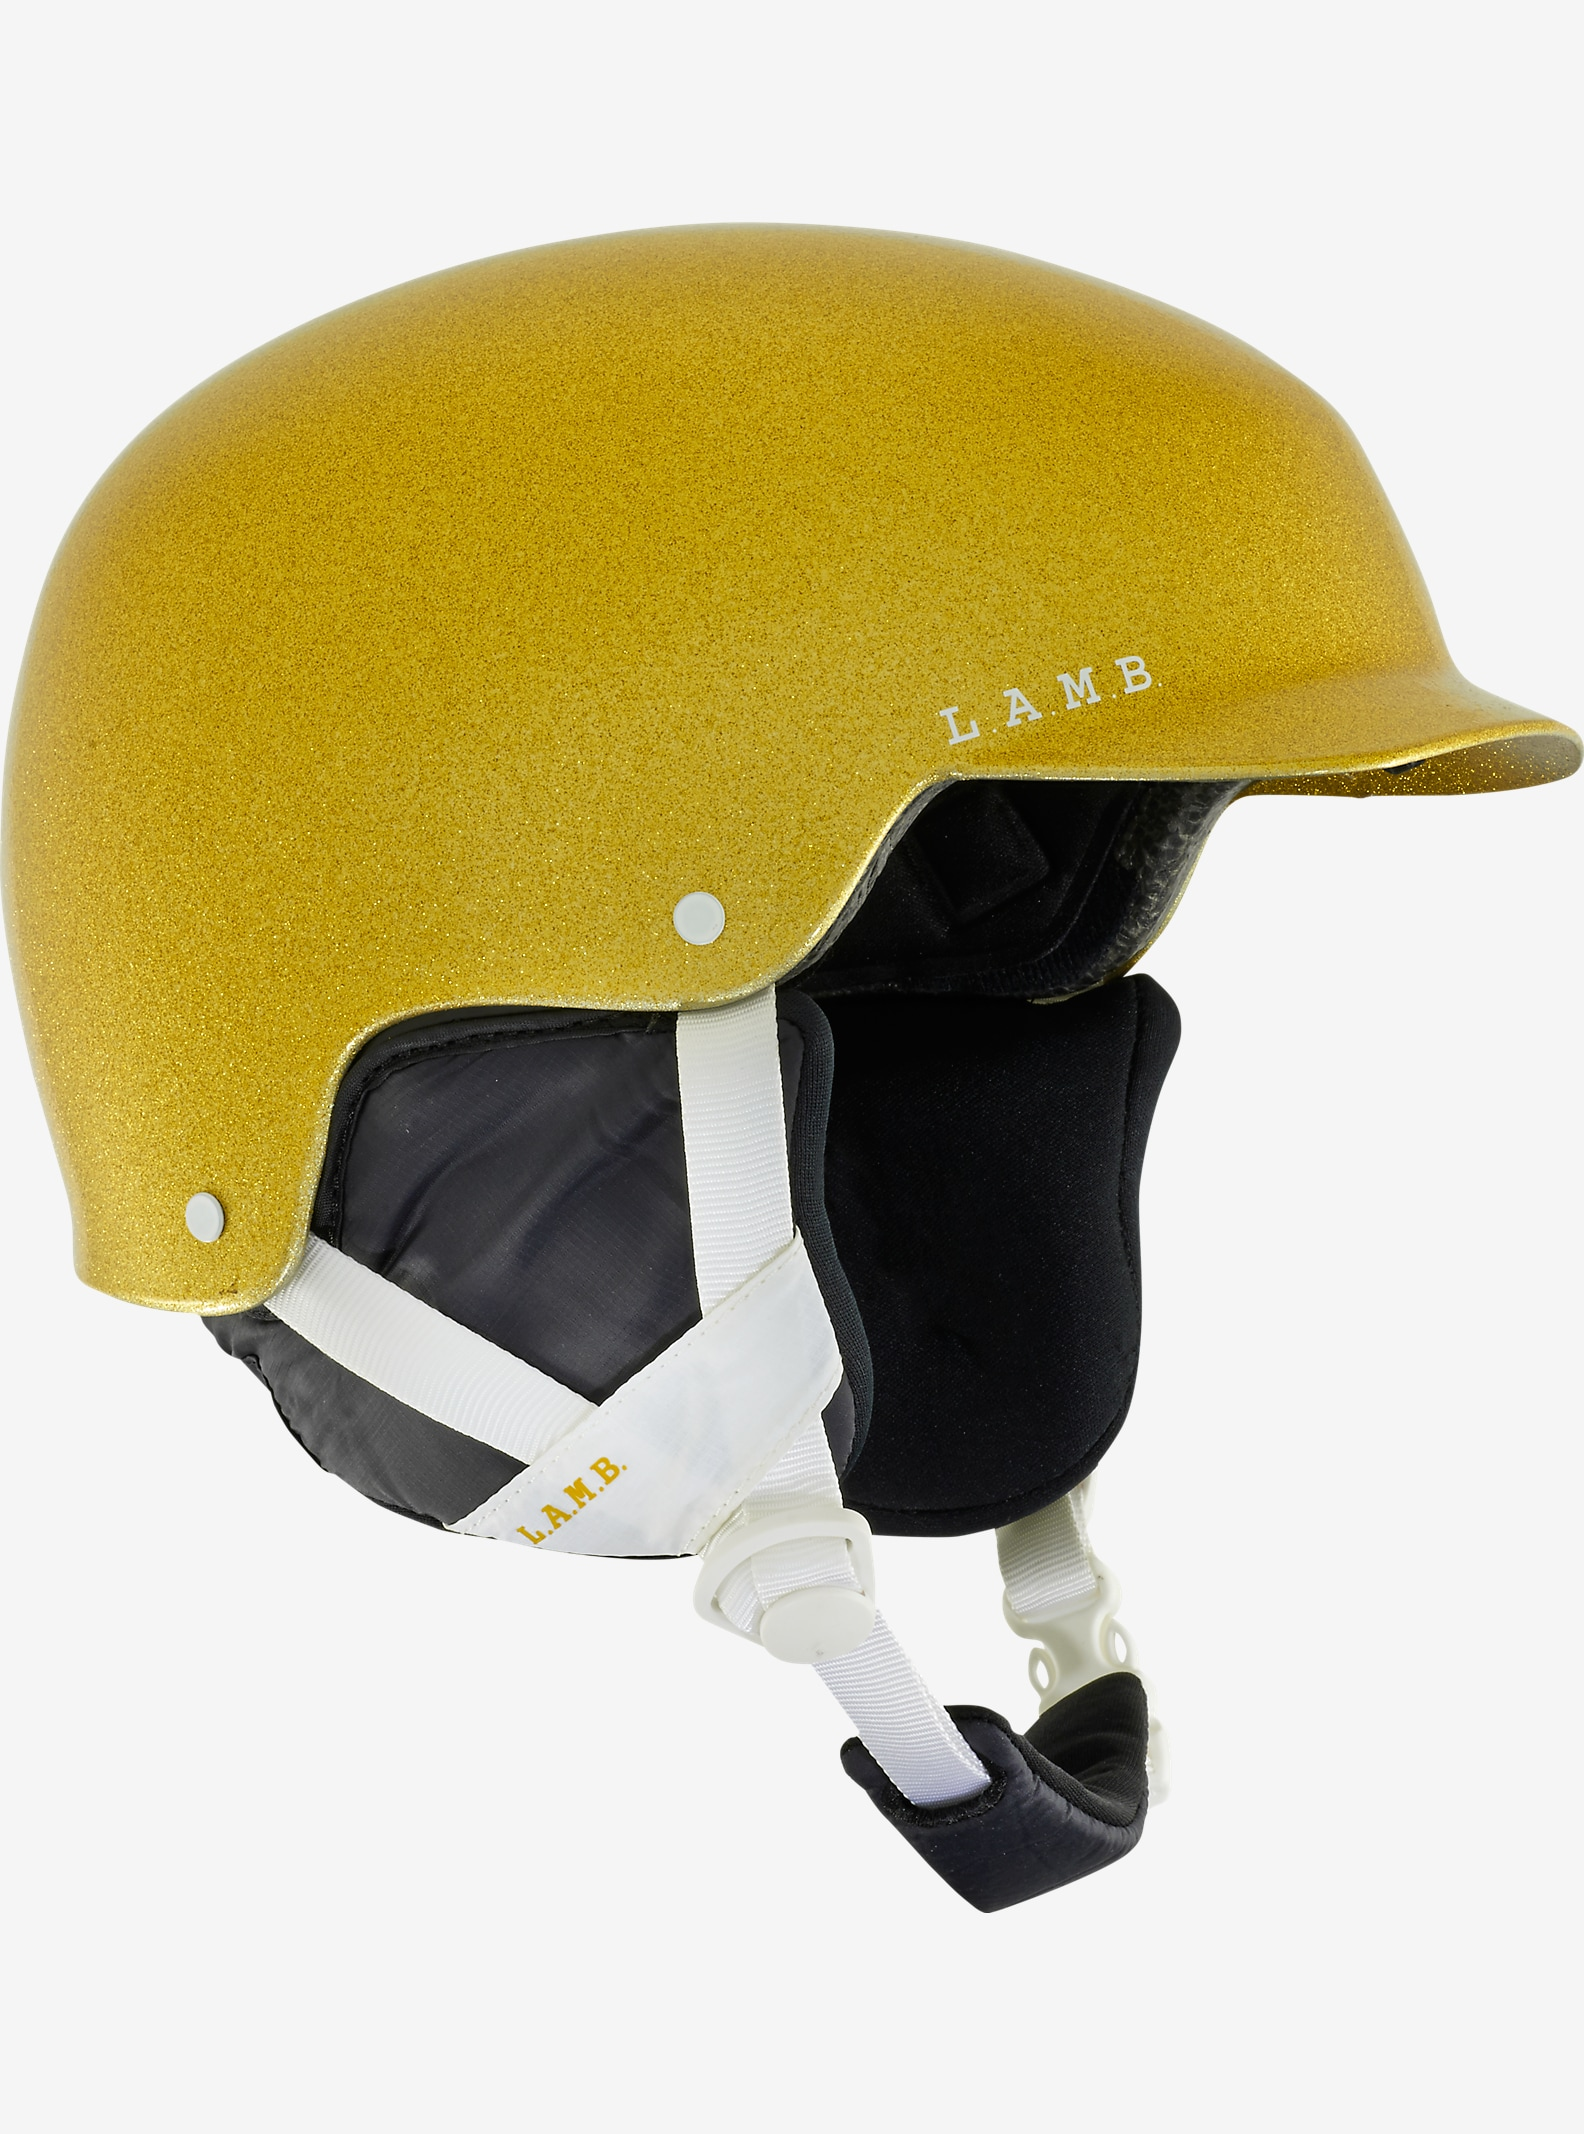 L.A.M.B. x anon. Aera Helmet shown in L.A.M.B.